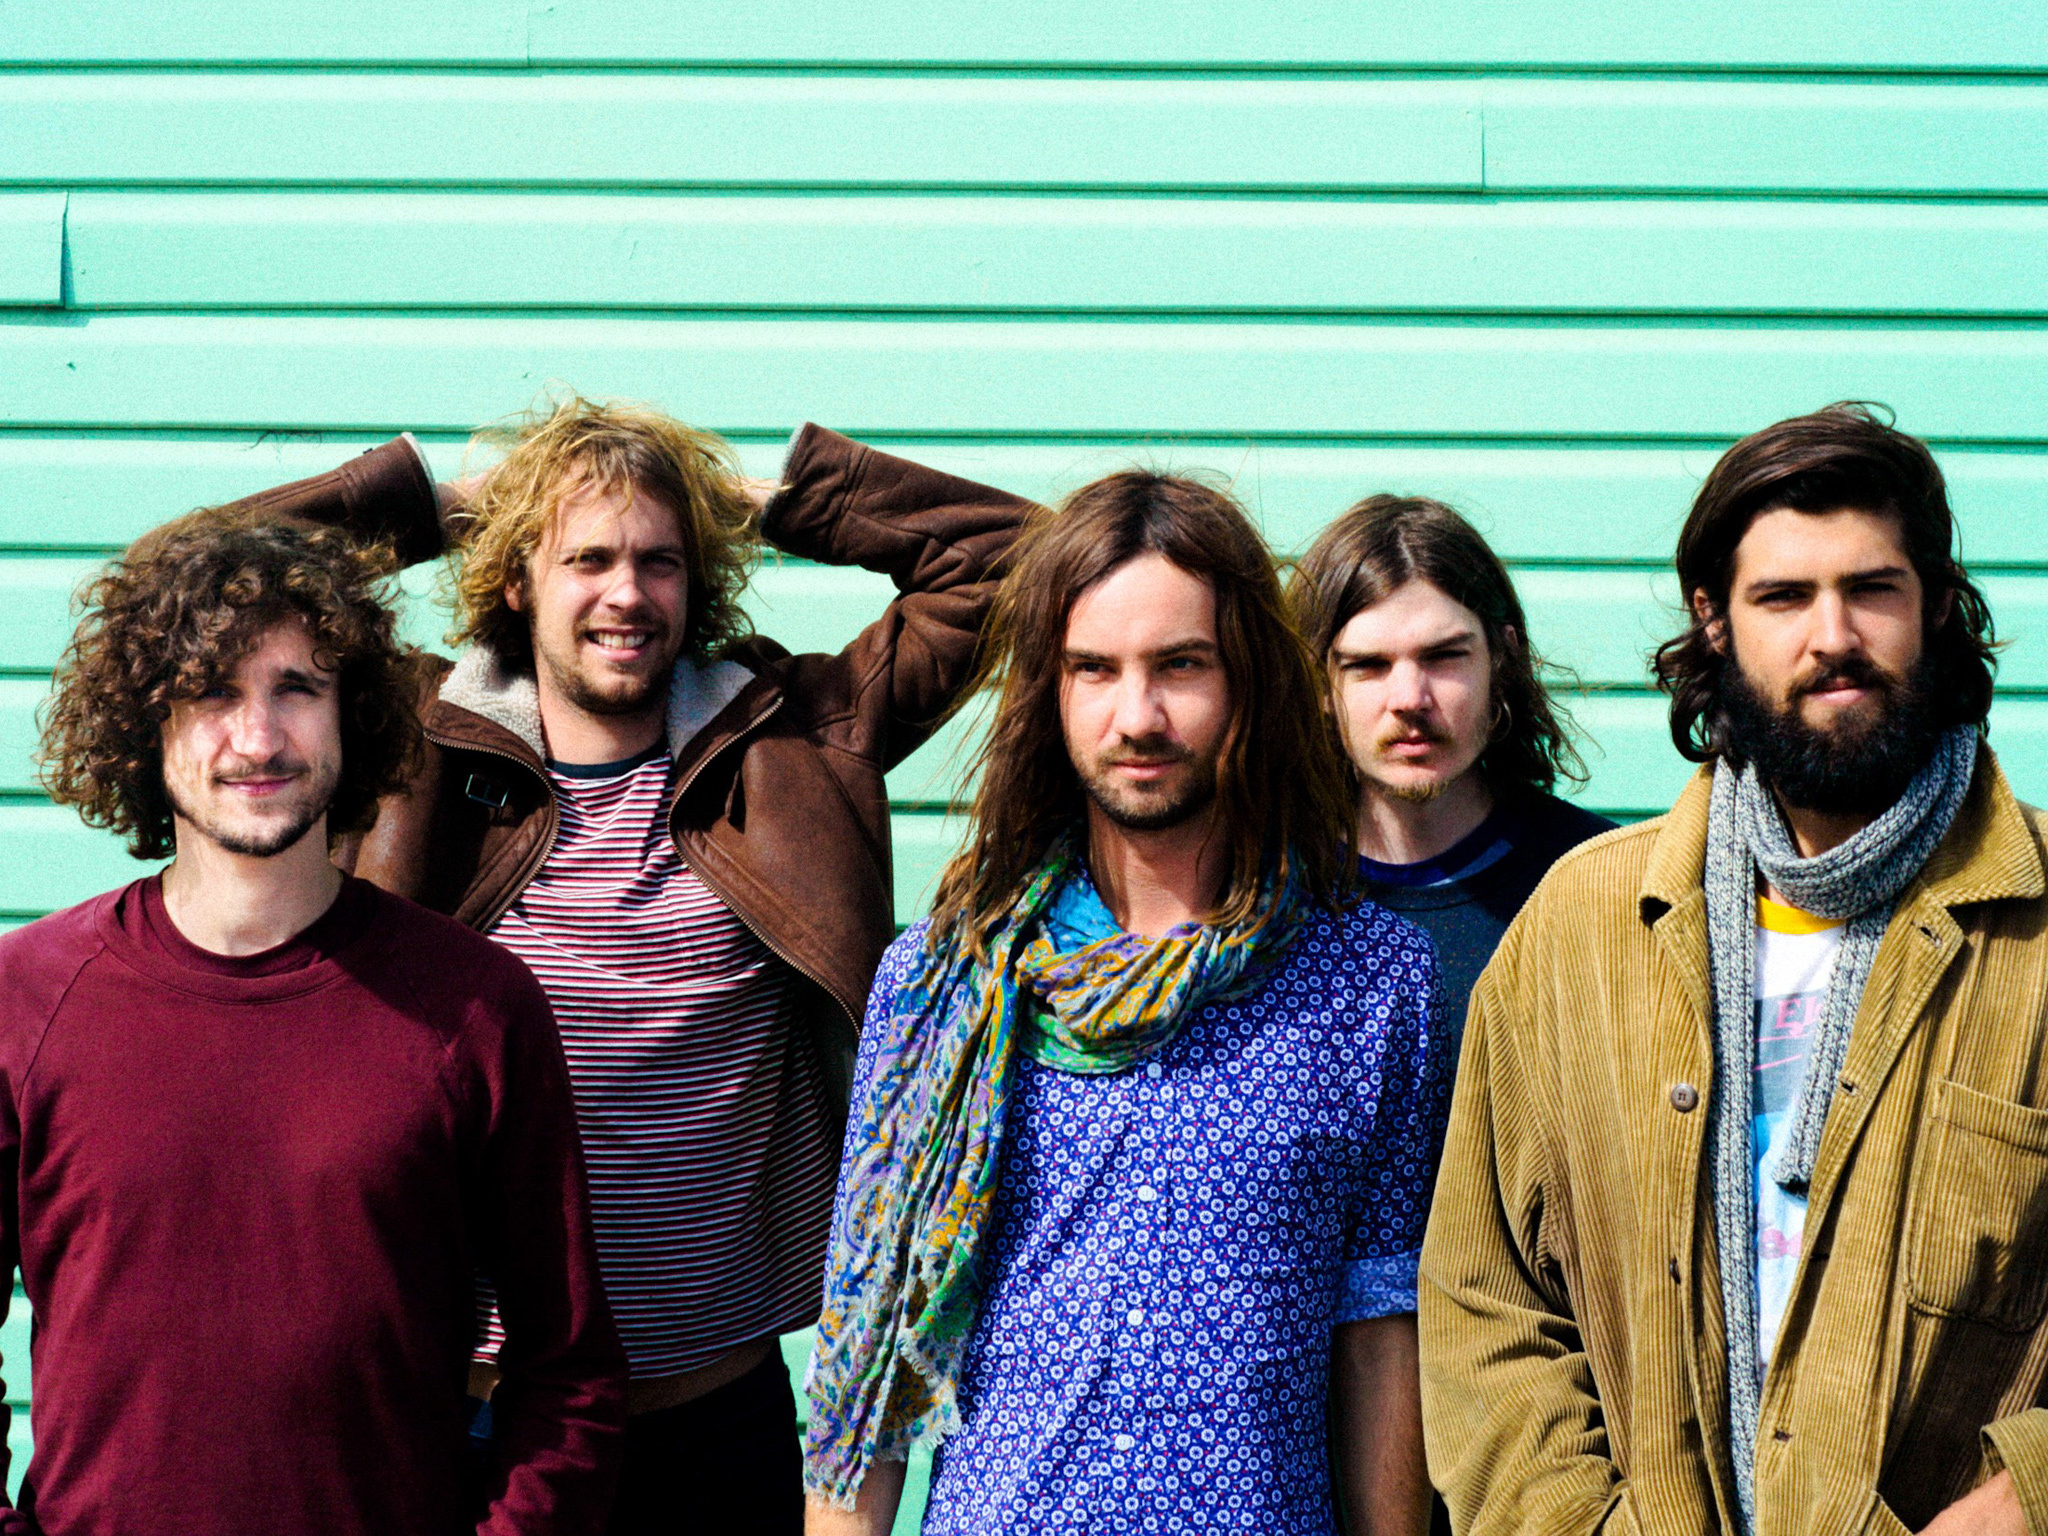 Don't miss Tame Impala's only Manchester gig